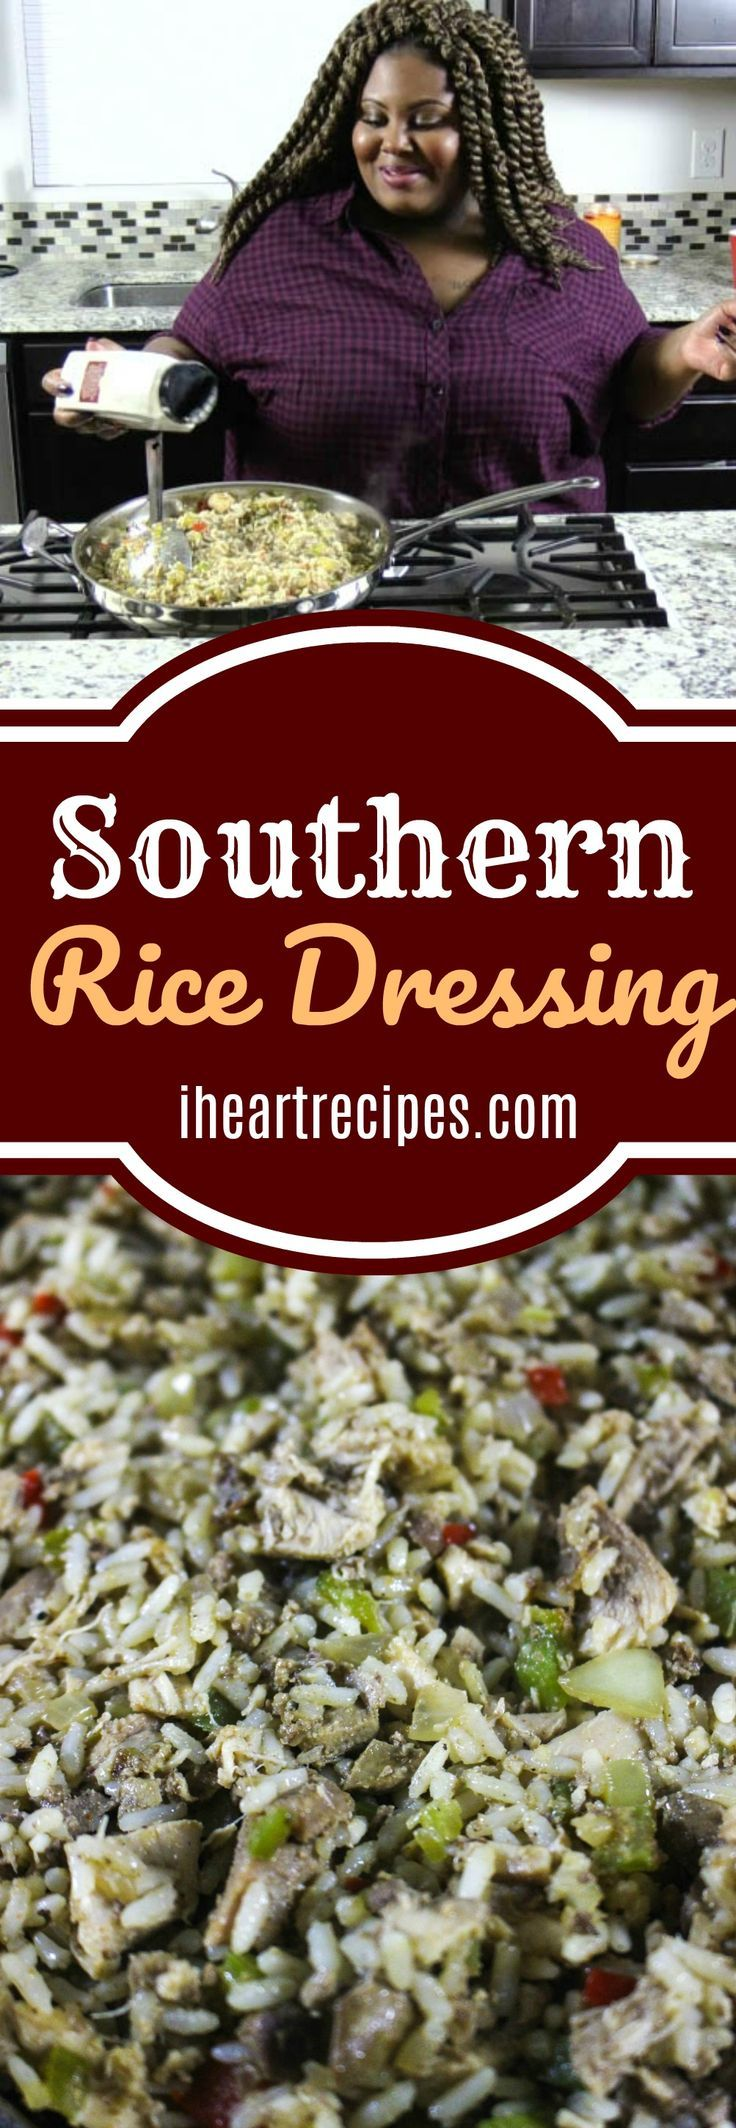 Photo of Southern Style Rice Dressing | I Heart Recipes